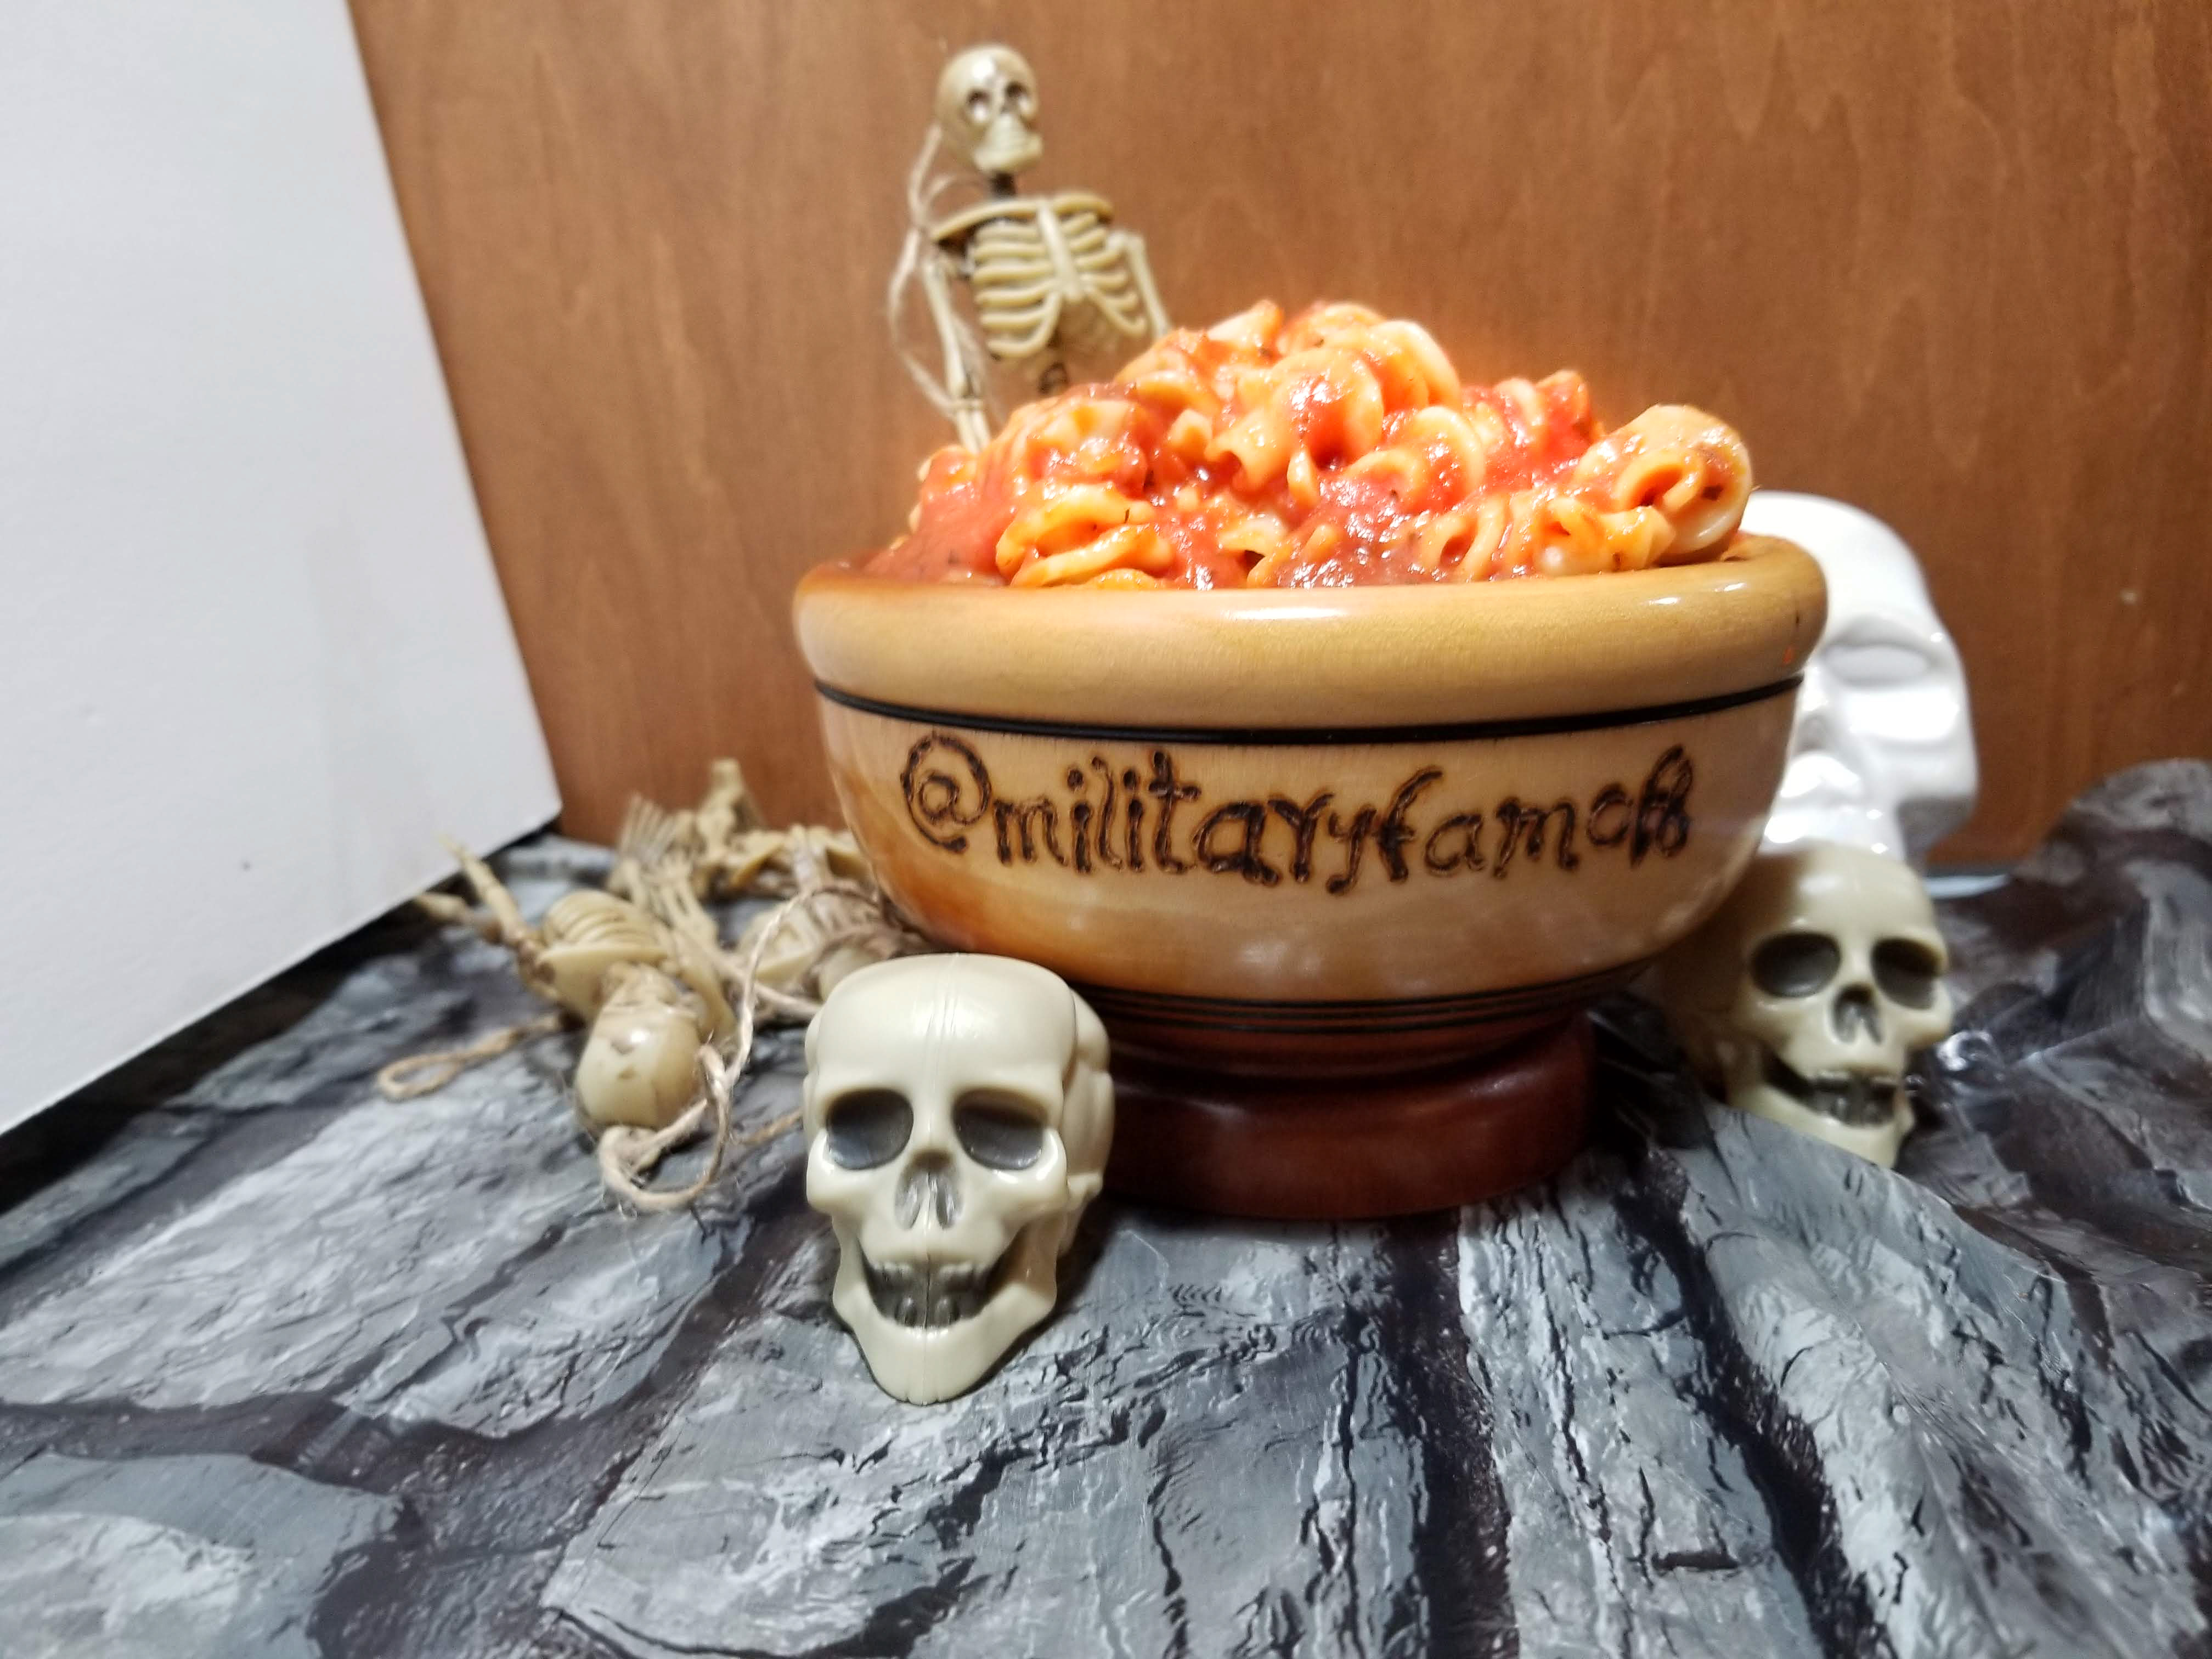 How to Make Creepy Brain Pasta! This is the easiest and fastest meal I have ever made; did I mention it was also the grossest? Stop by our site and read our post, you will see our recipe is dead on!